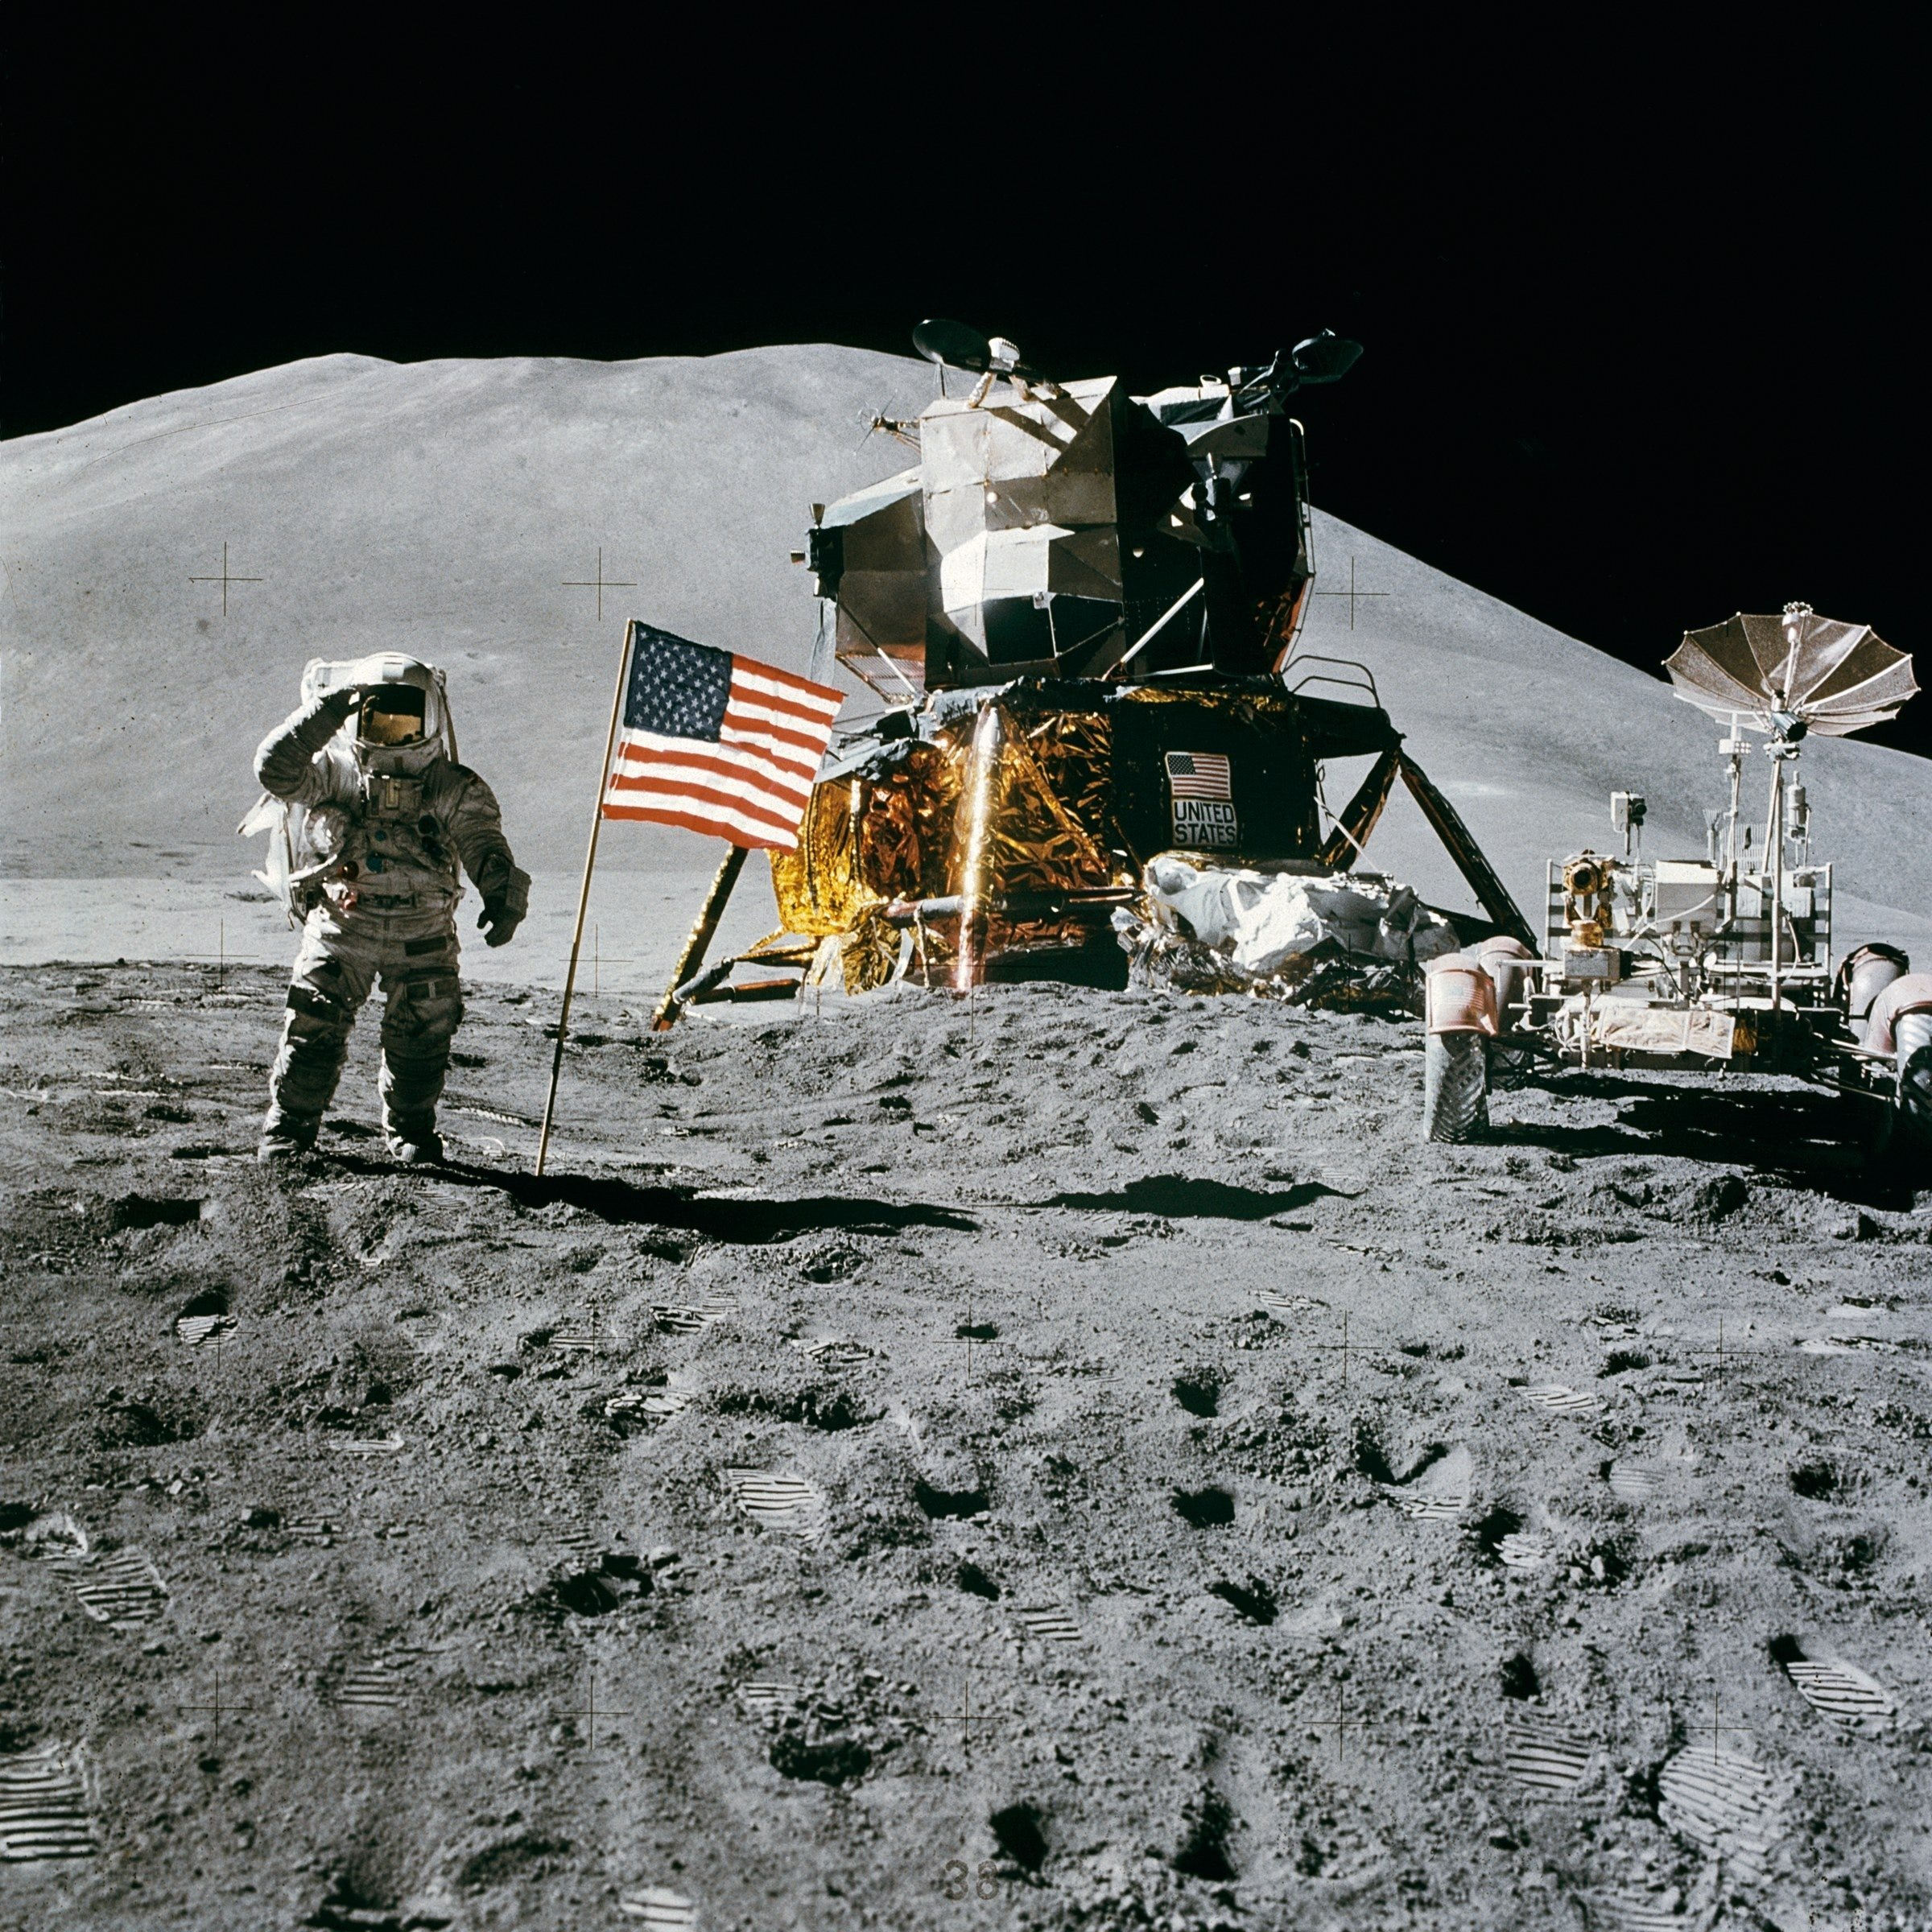 American flag on the moon. | Source: pexles.com